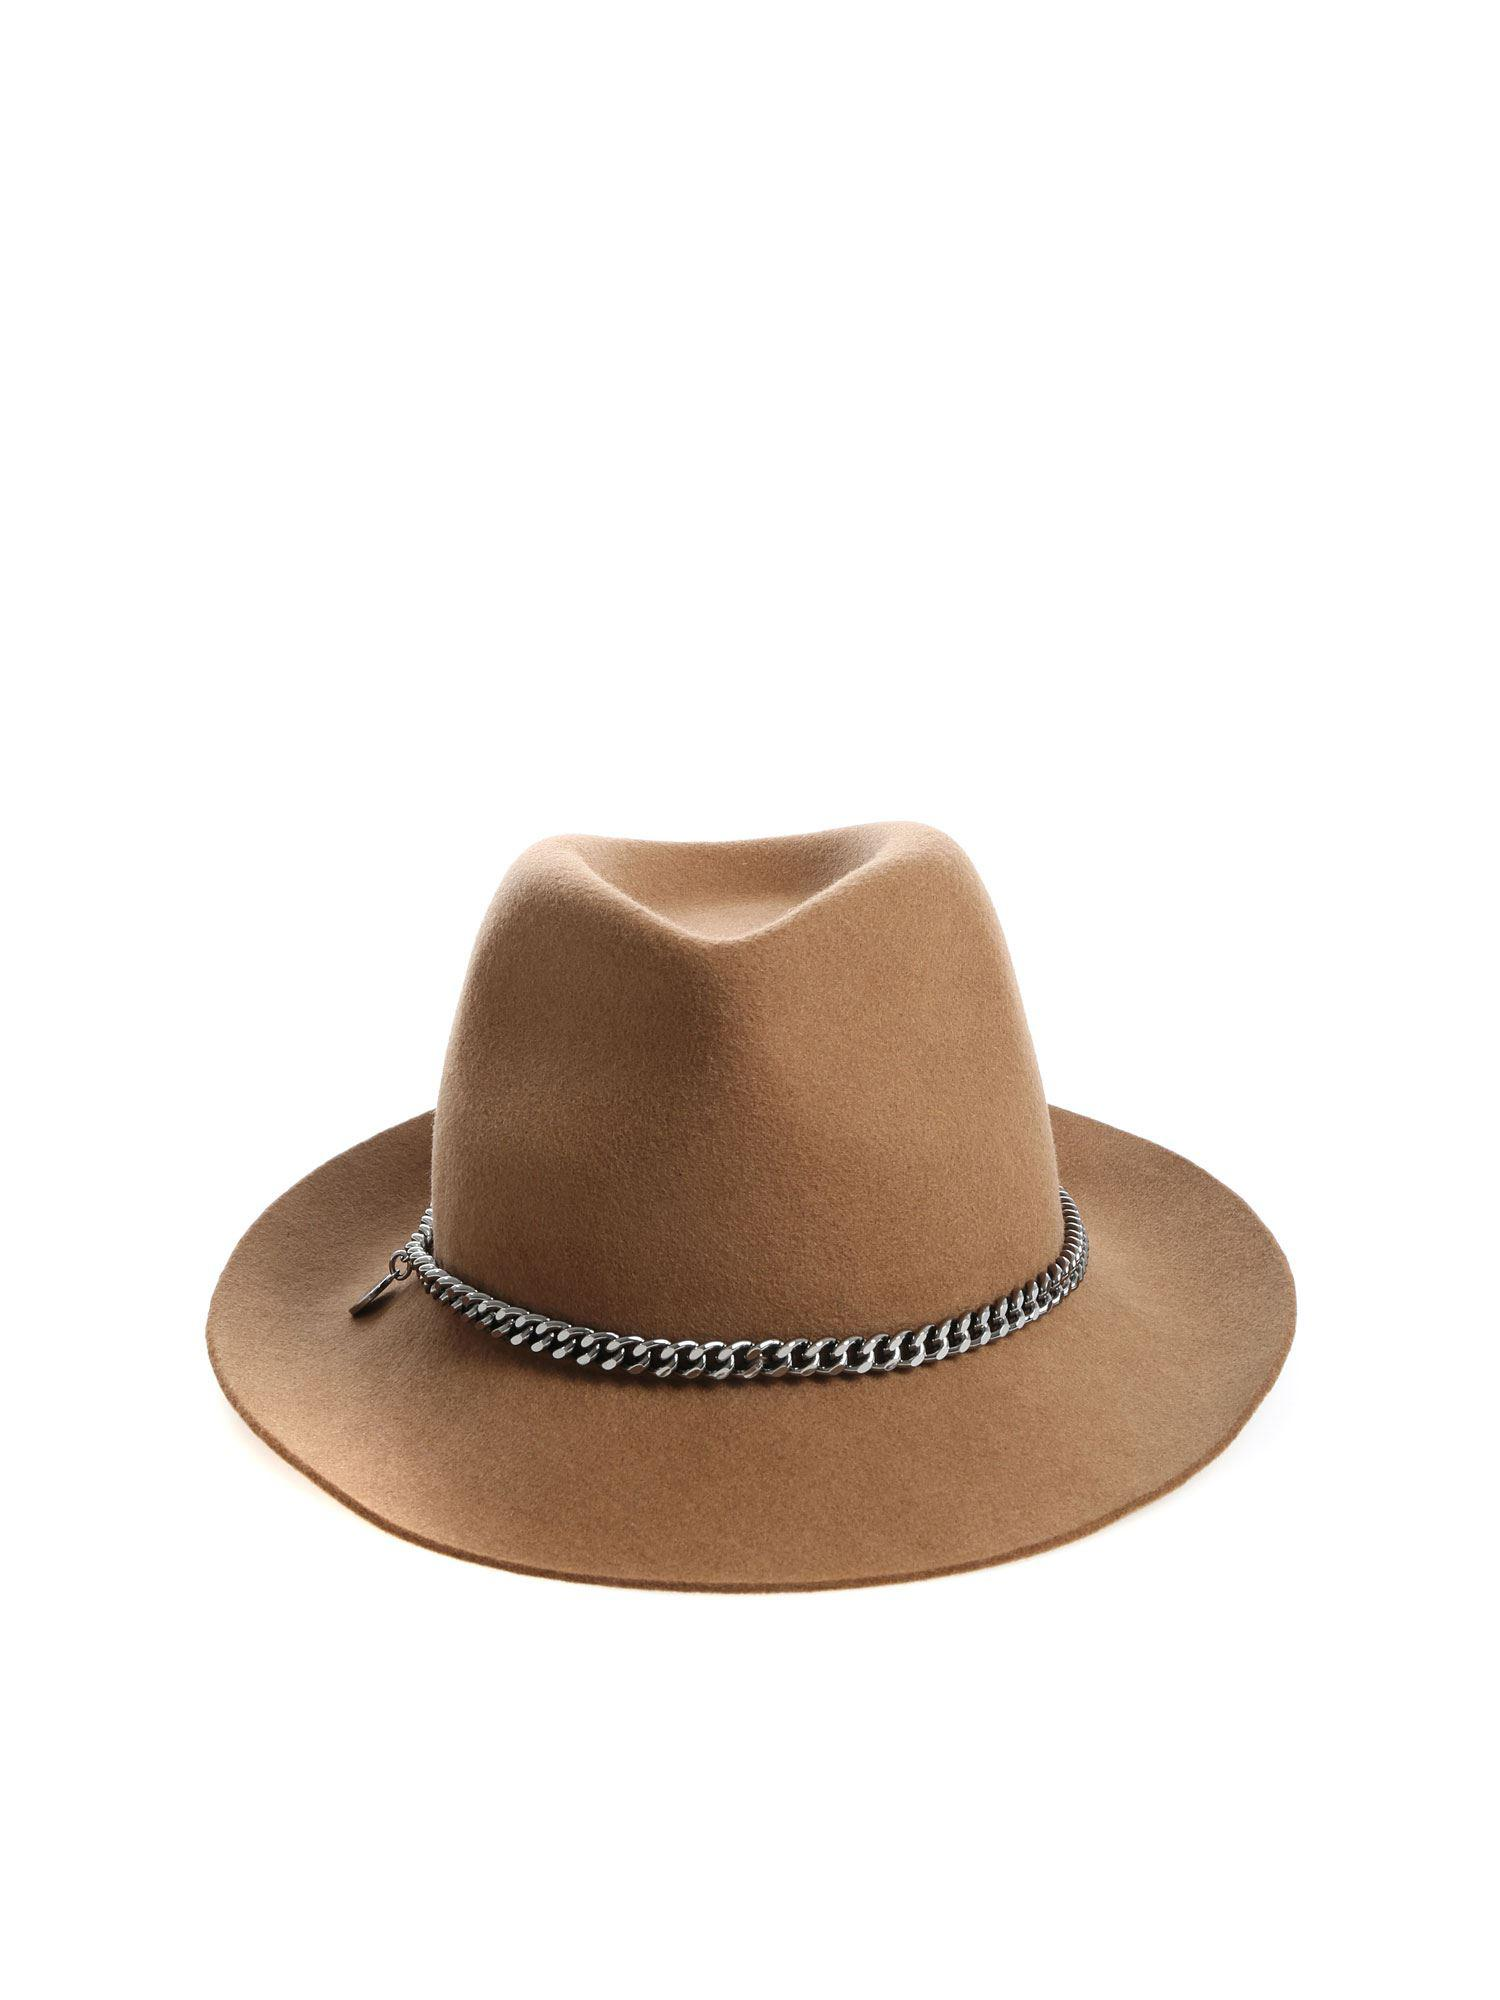 60f03e049ab Stella McCartney Brown Hat With Chain in Brown - Lyst